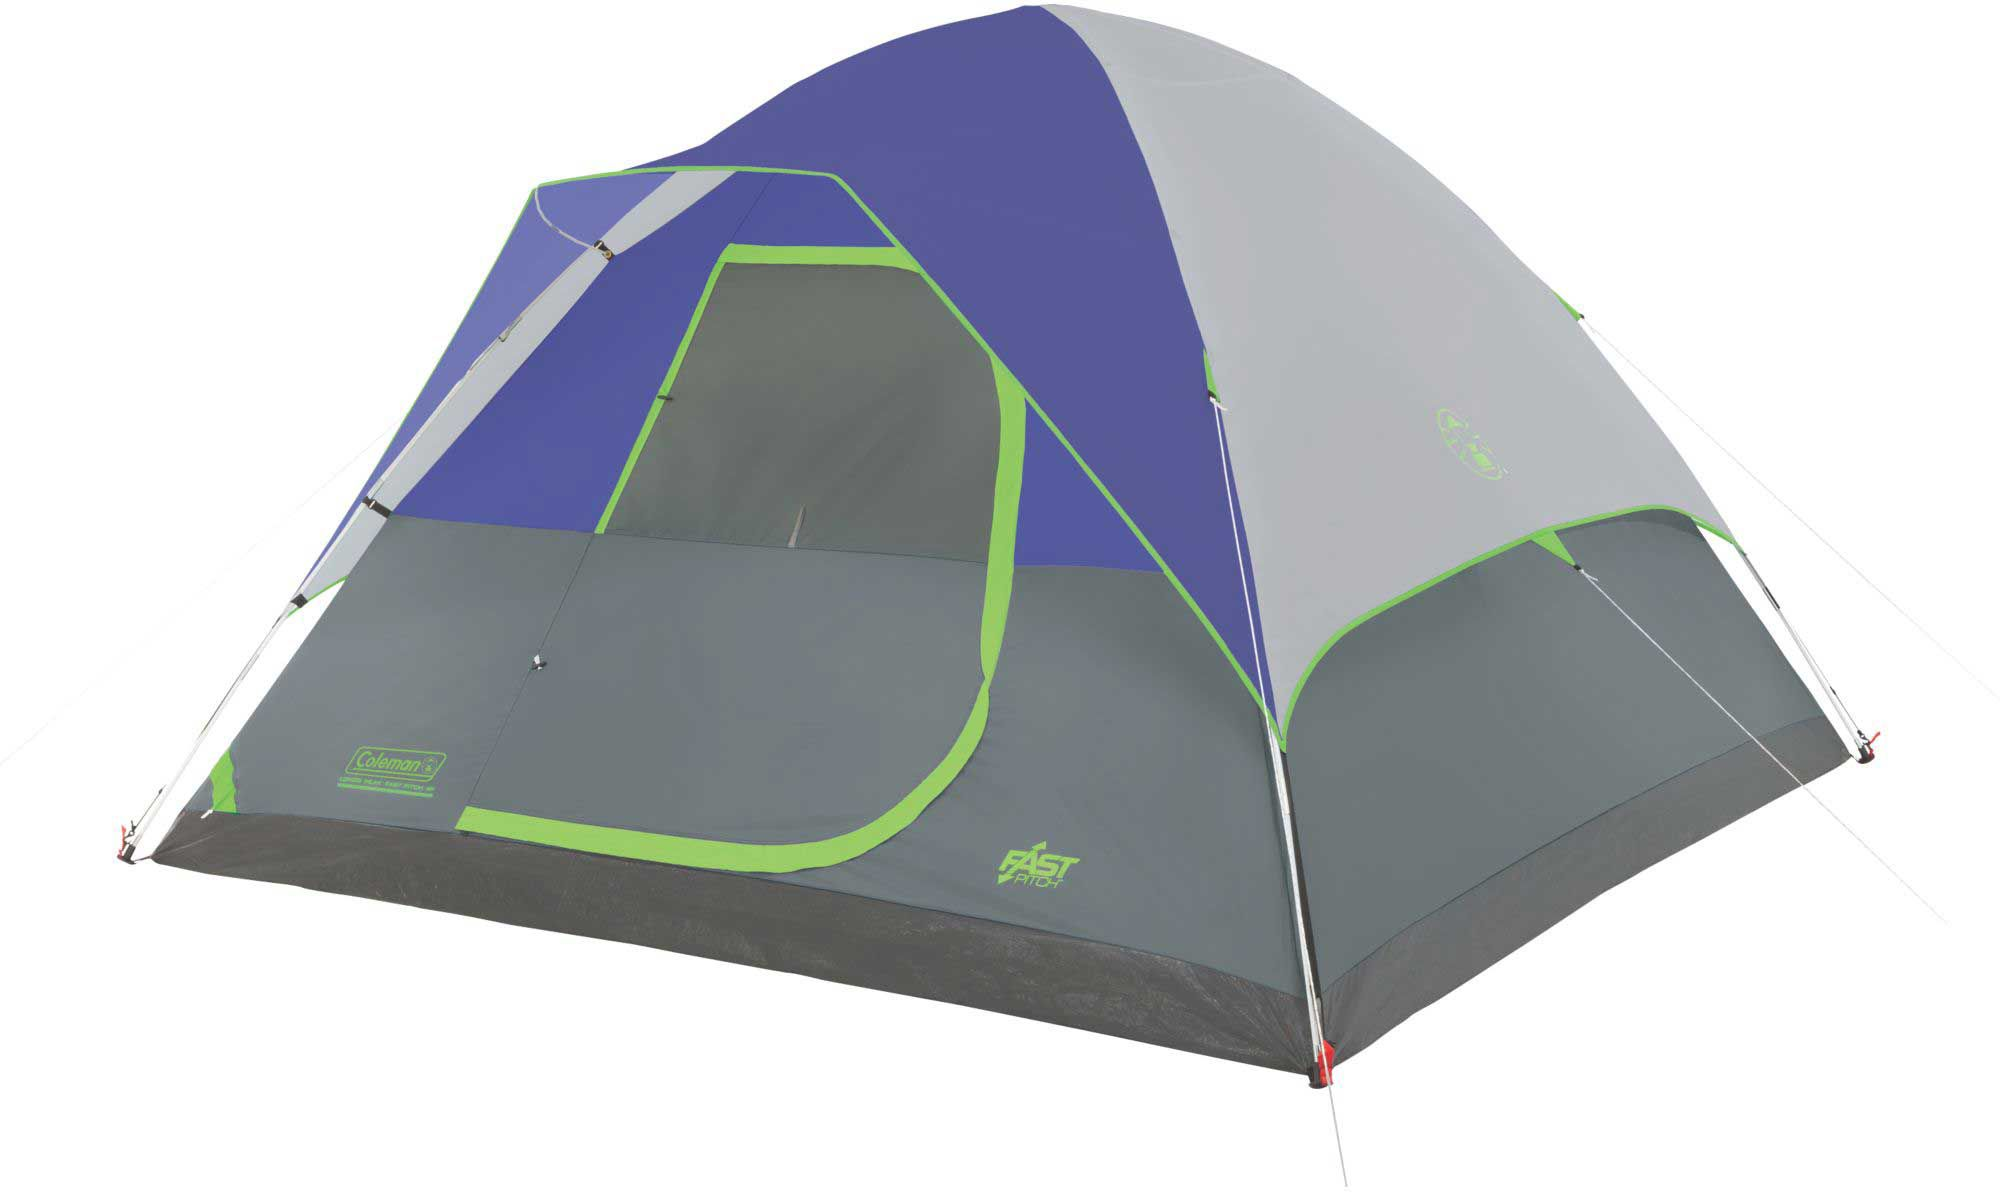 noImageFound ???  sc 1 st  DICKu0027S Sporting Goods & Coleman River Gorge Fast Pitch 6 Person Tent | DICKu0027S Sporting Goods